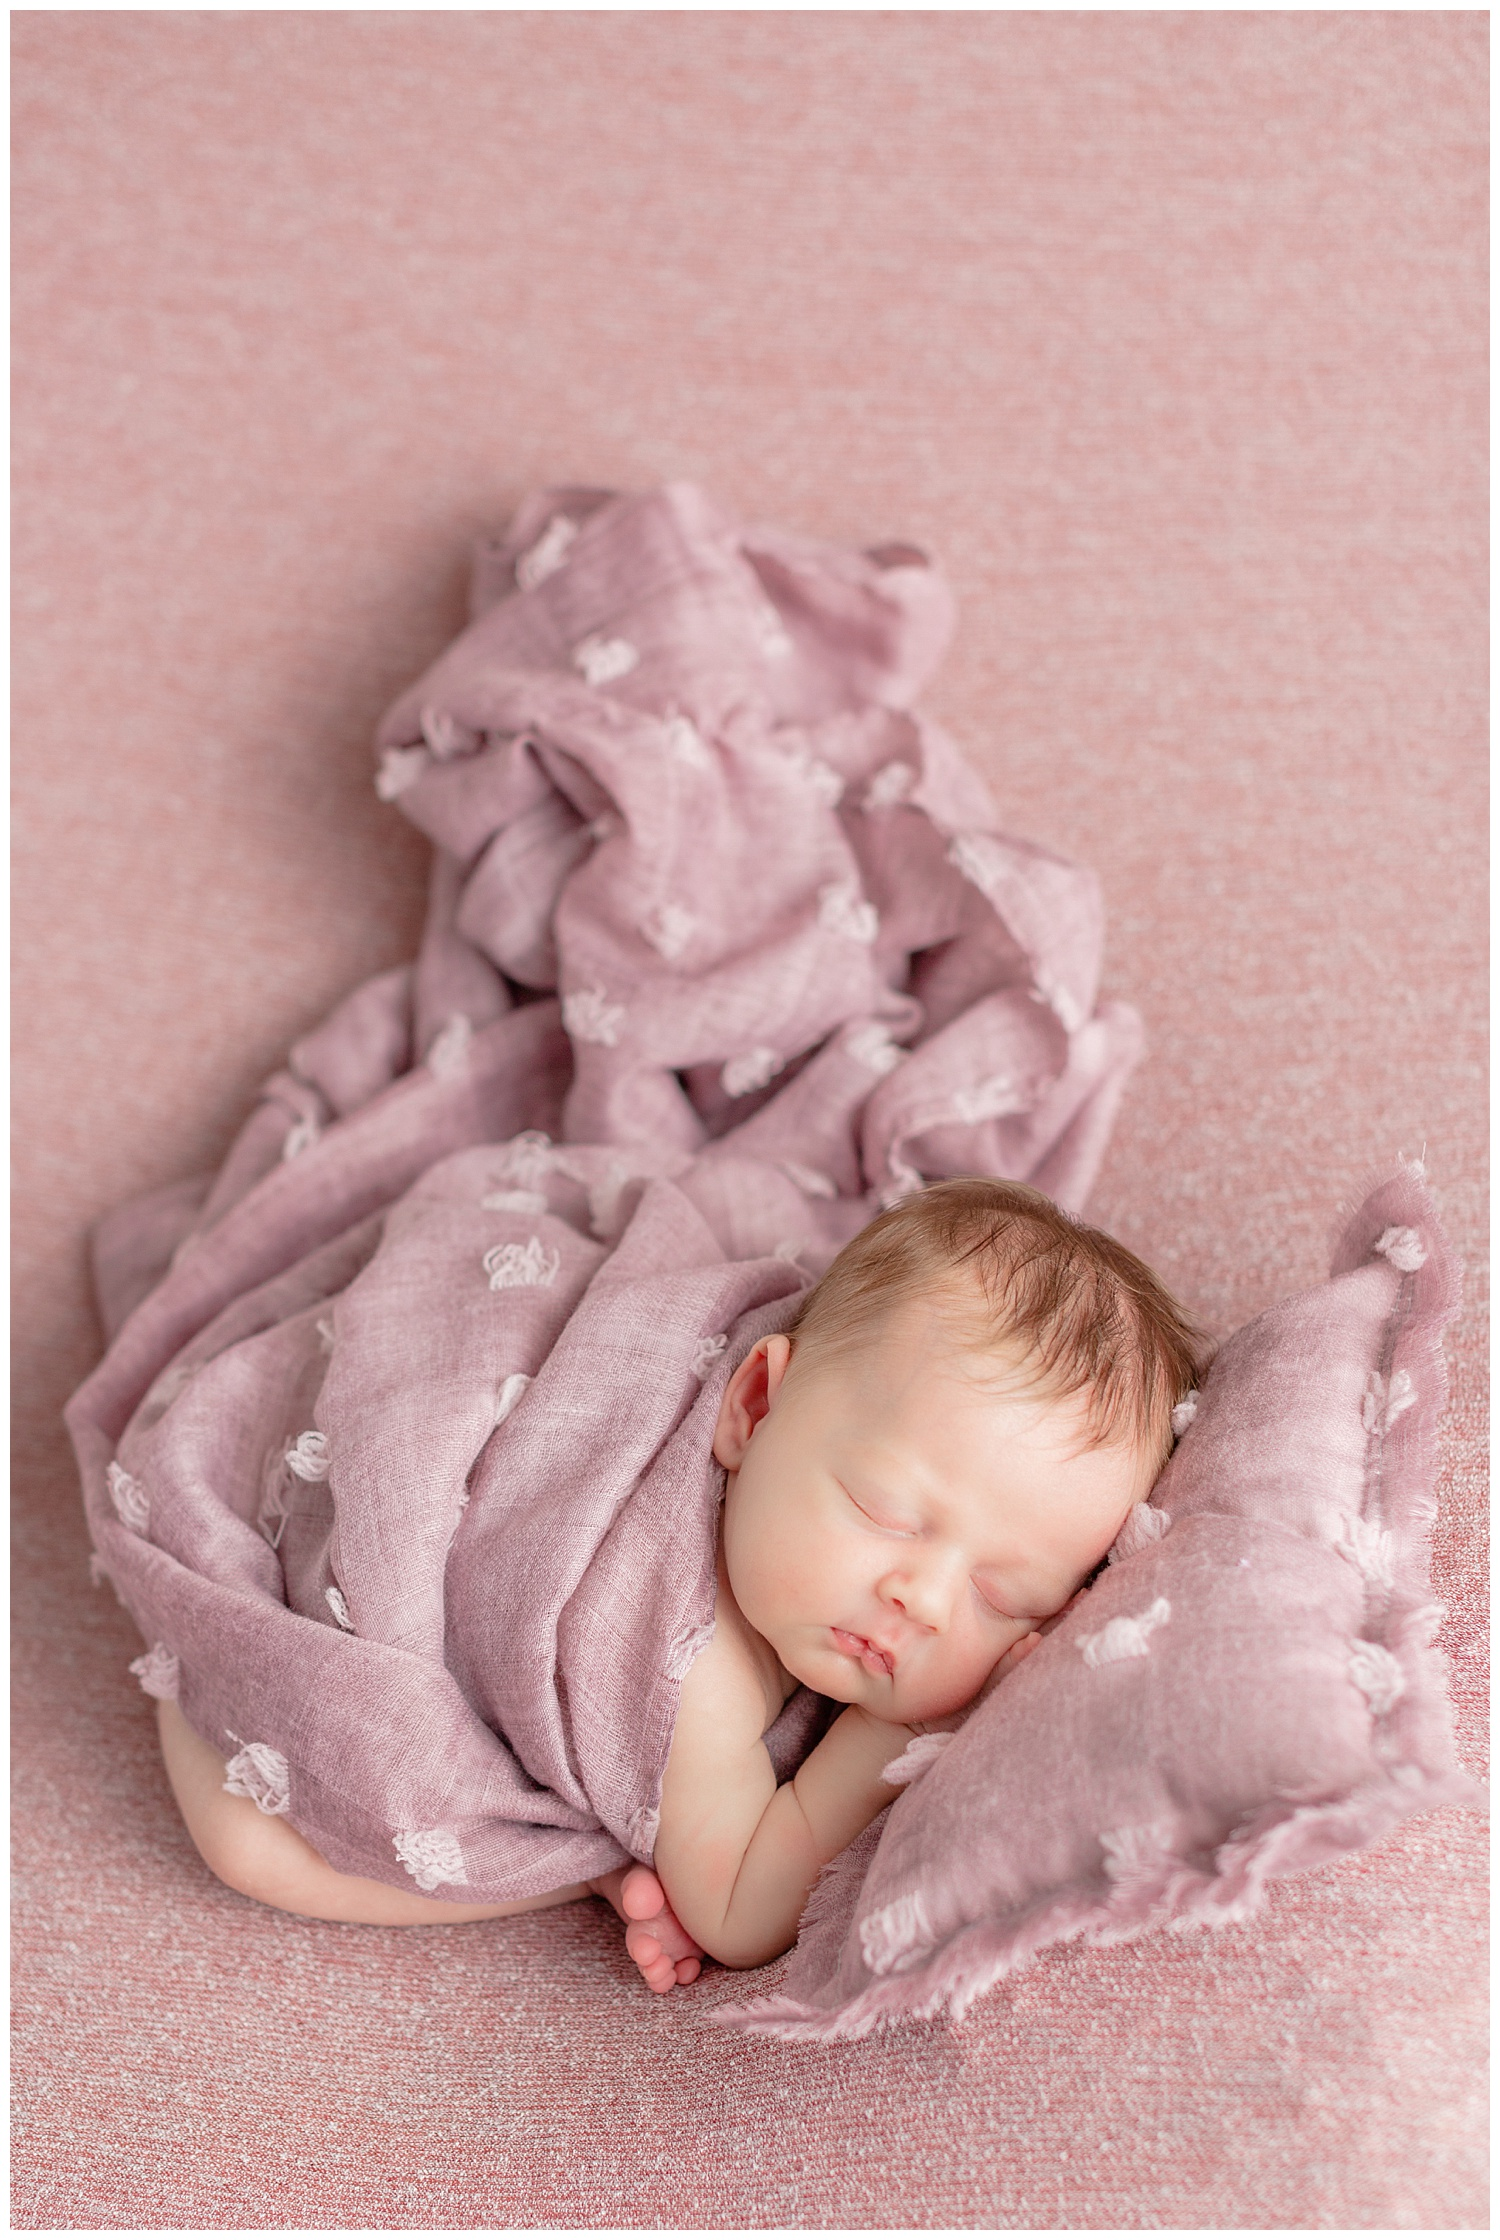 Newborn baby girl posed on mauve colored stretch fabric snuggled in a taco pose with a textured pillow and wrap. | CB Studio